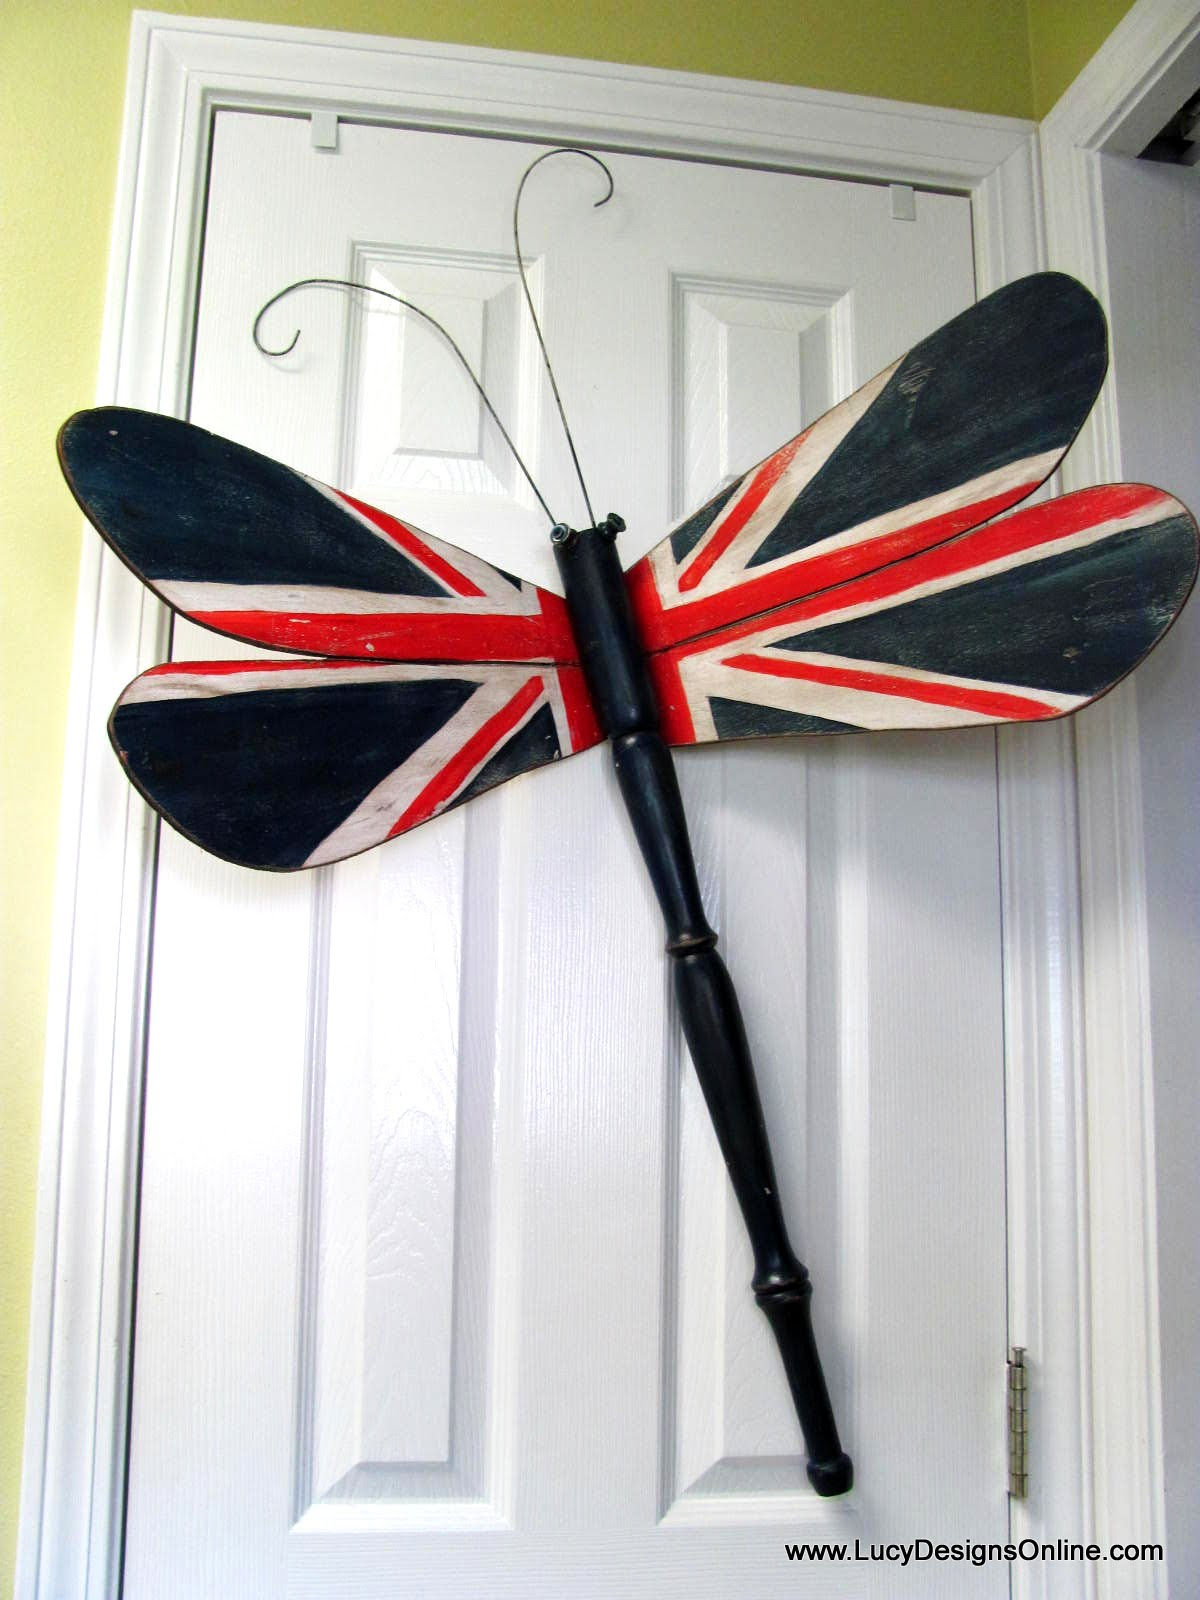 Dragonfly Art Table Leg Dragonfly Patriotic Flag